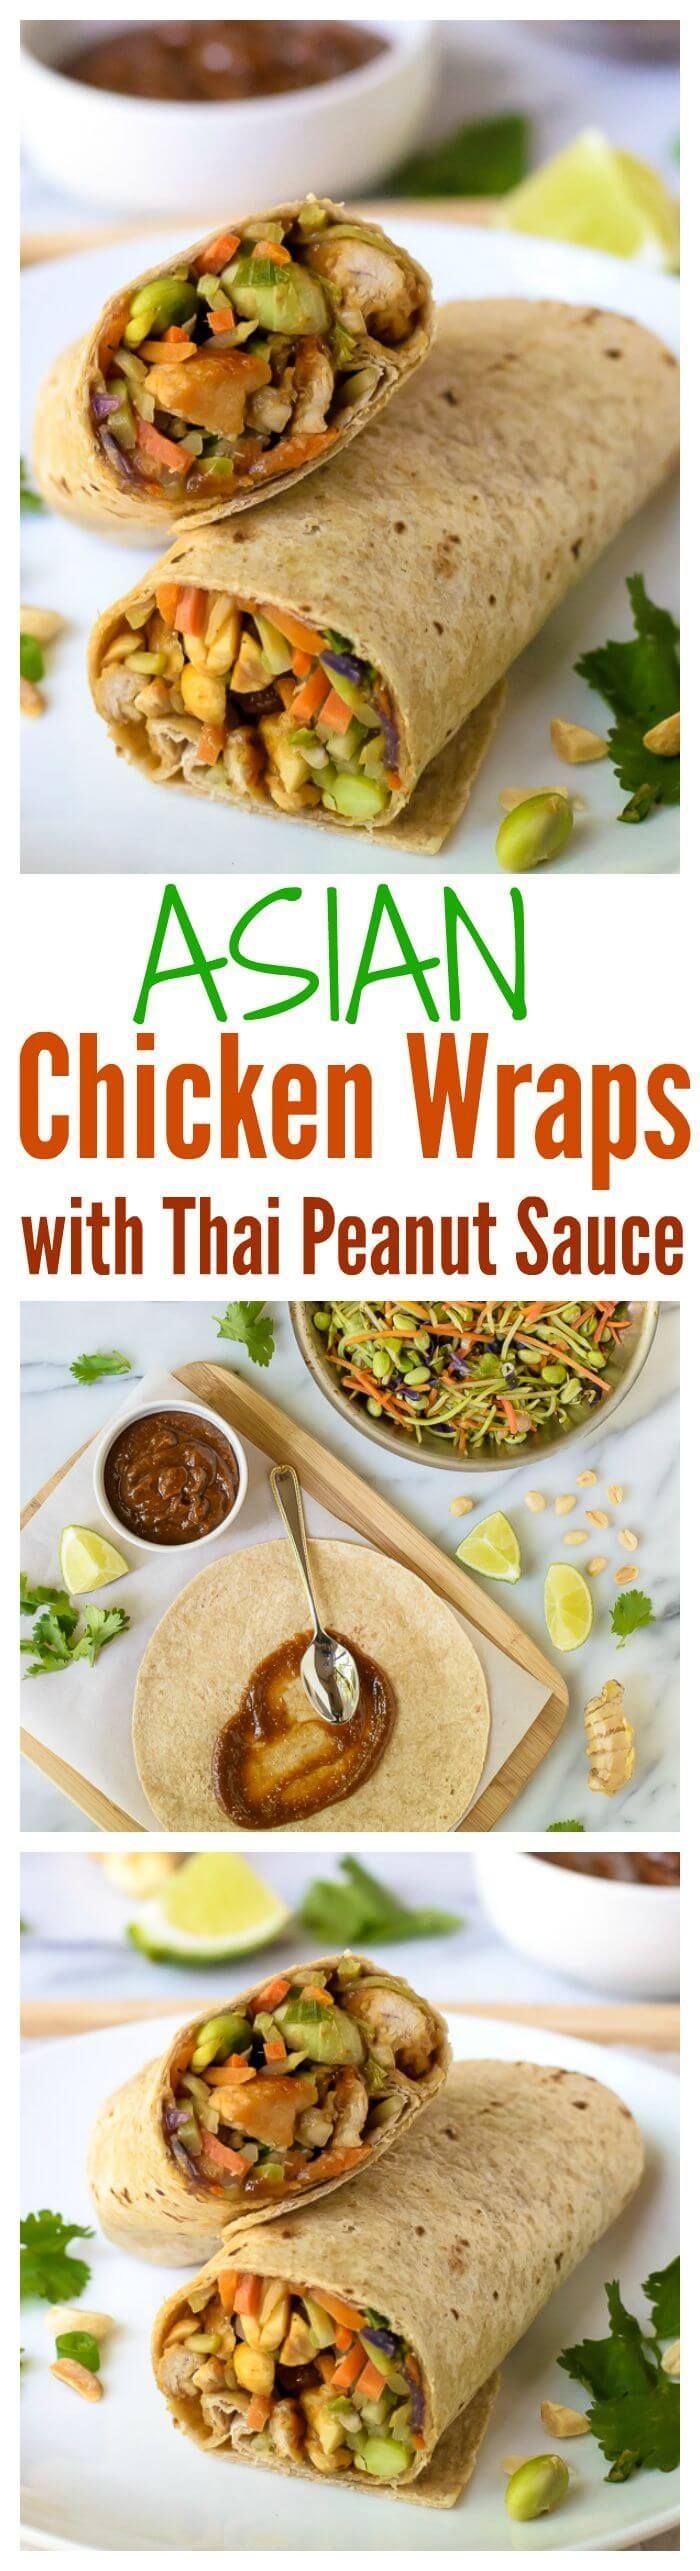 Asian Chicken Wraps with Thai Peanut Sauce. Ready in only 30 minutes and perfect for lunch or dinner